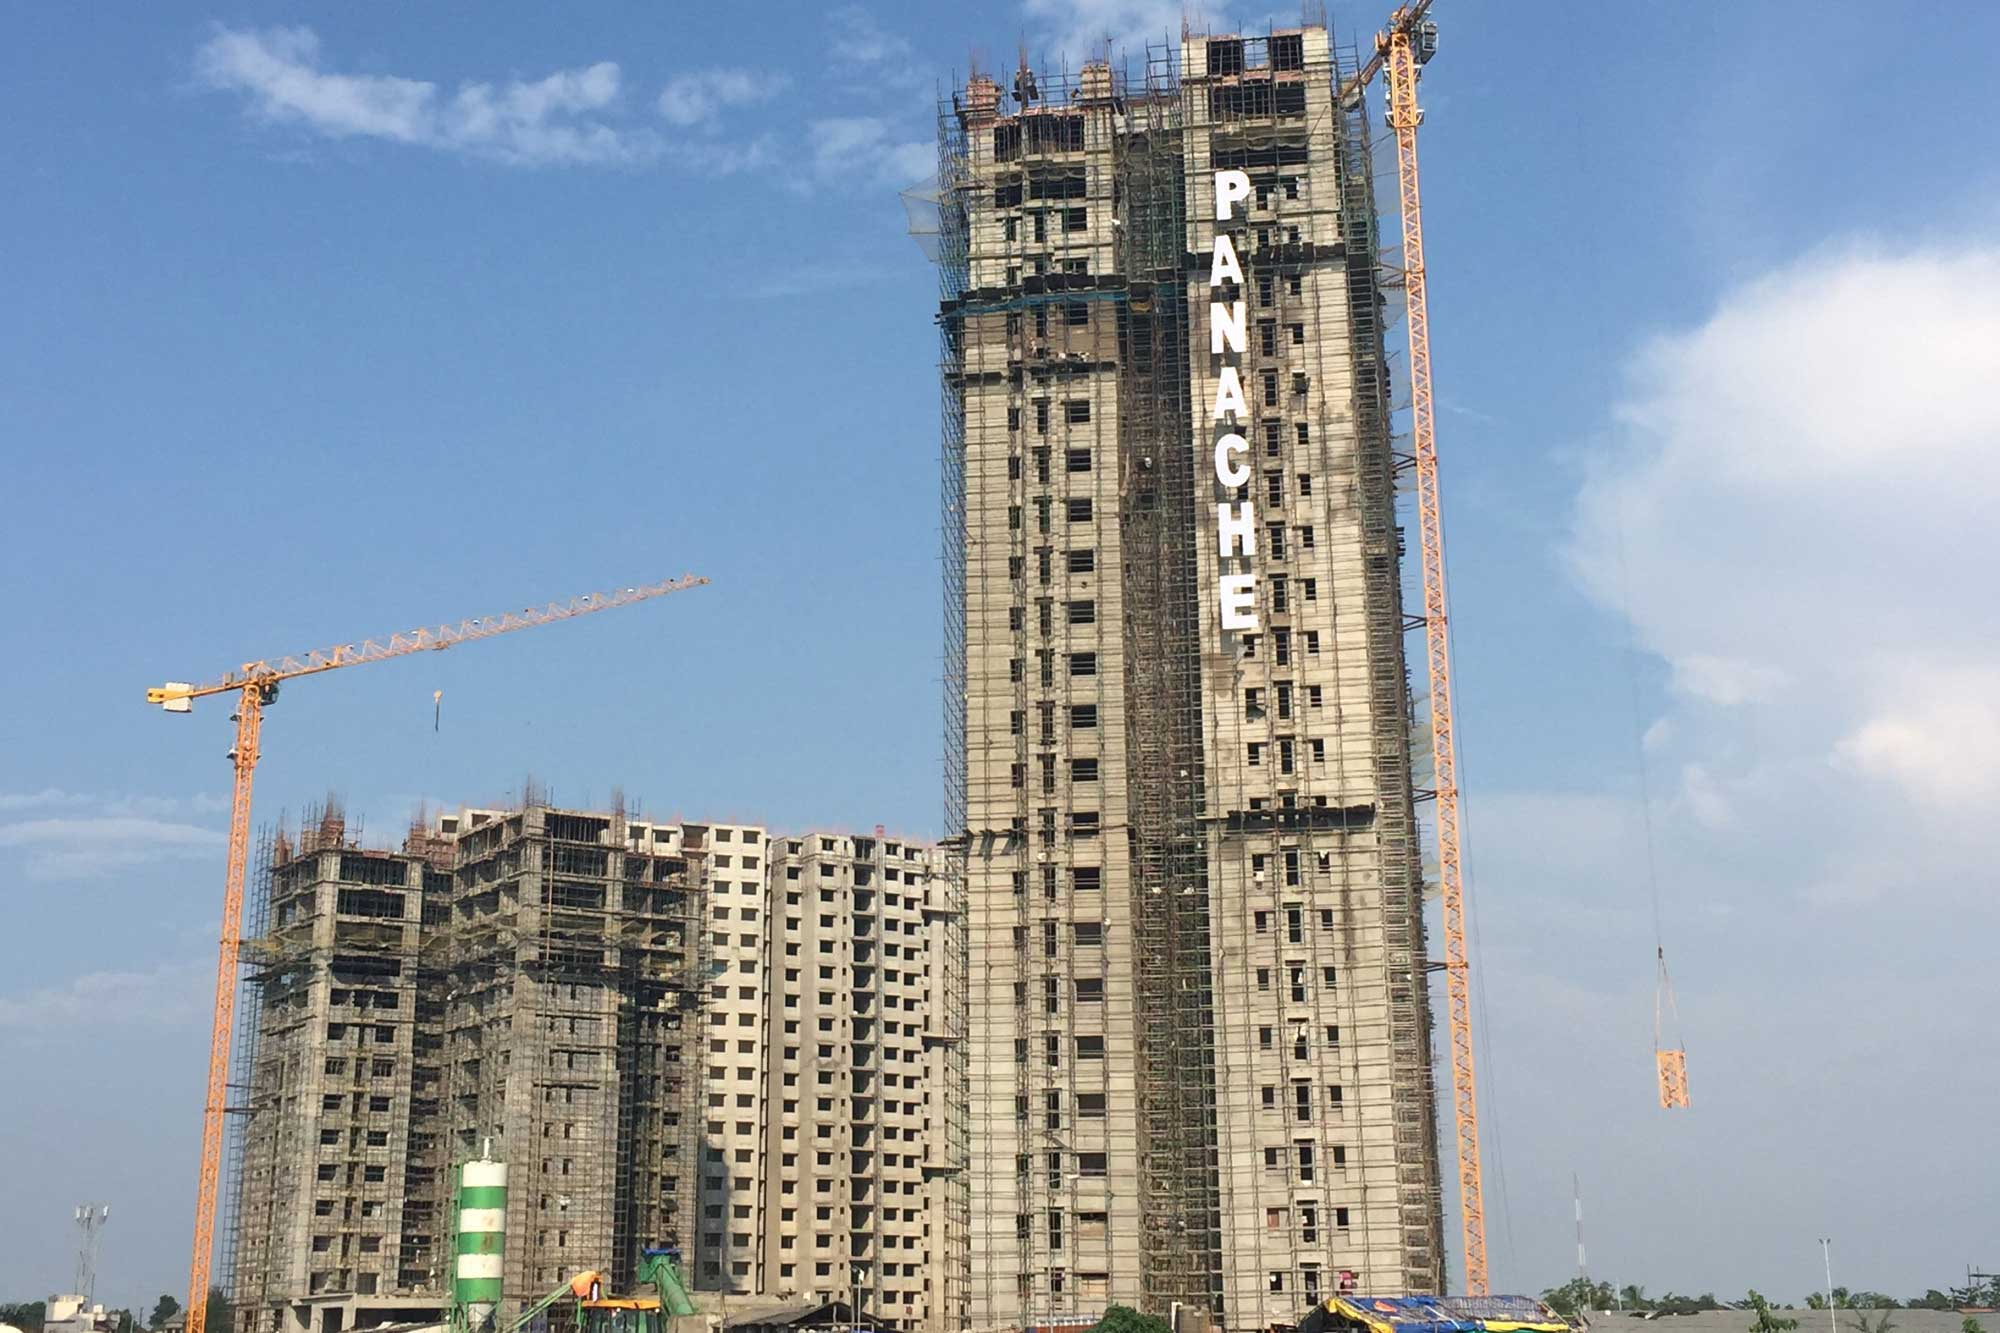 Potain cranes help deliver luxury residences in Kolkata